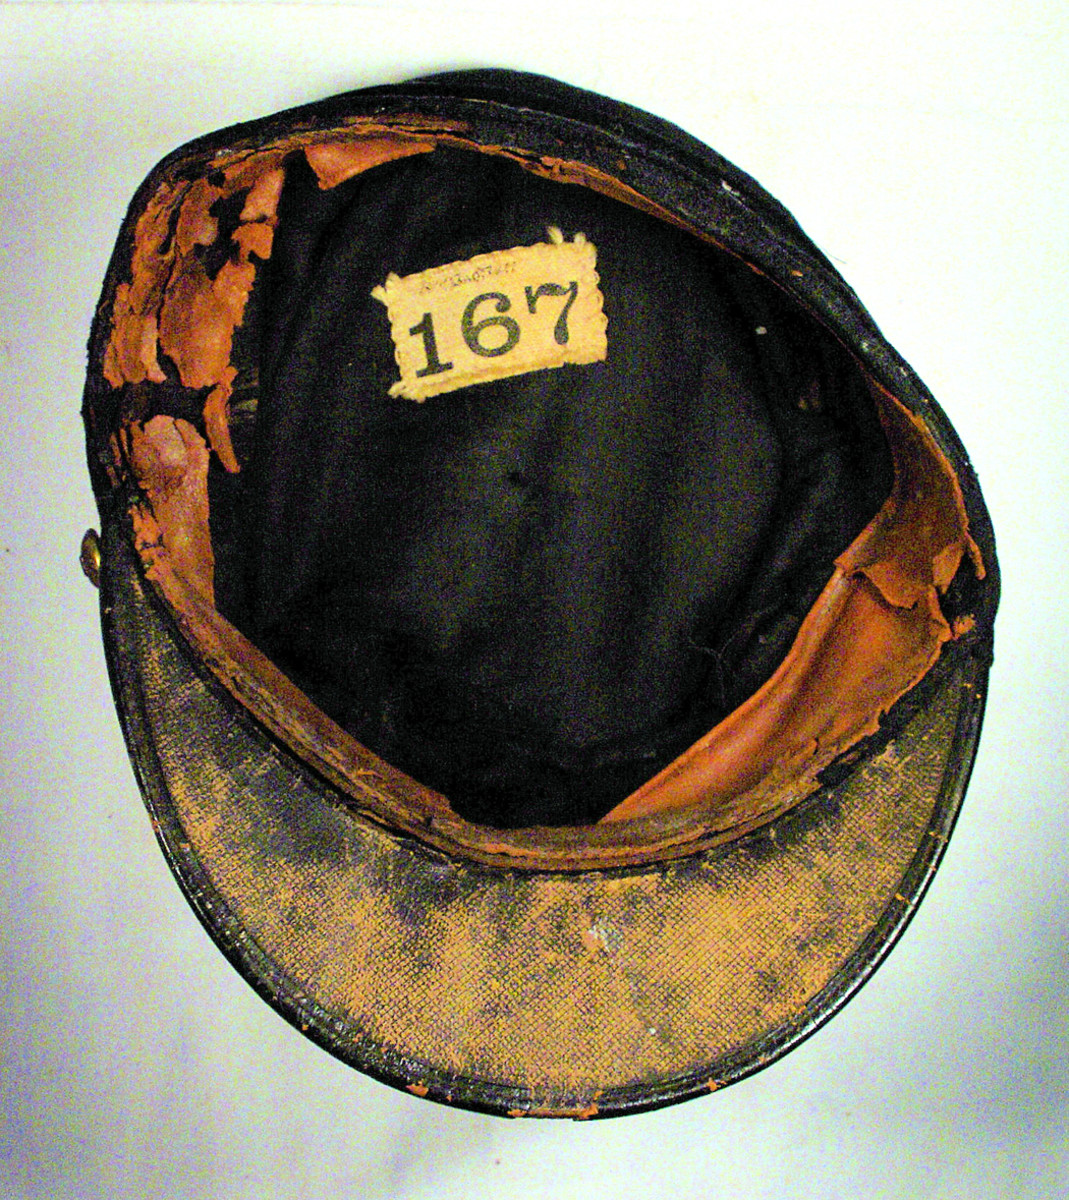 The interior of the well-worn kepi is lined with black cloth. The cloth label shows Bert's name written in ink.